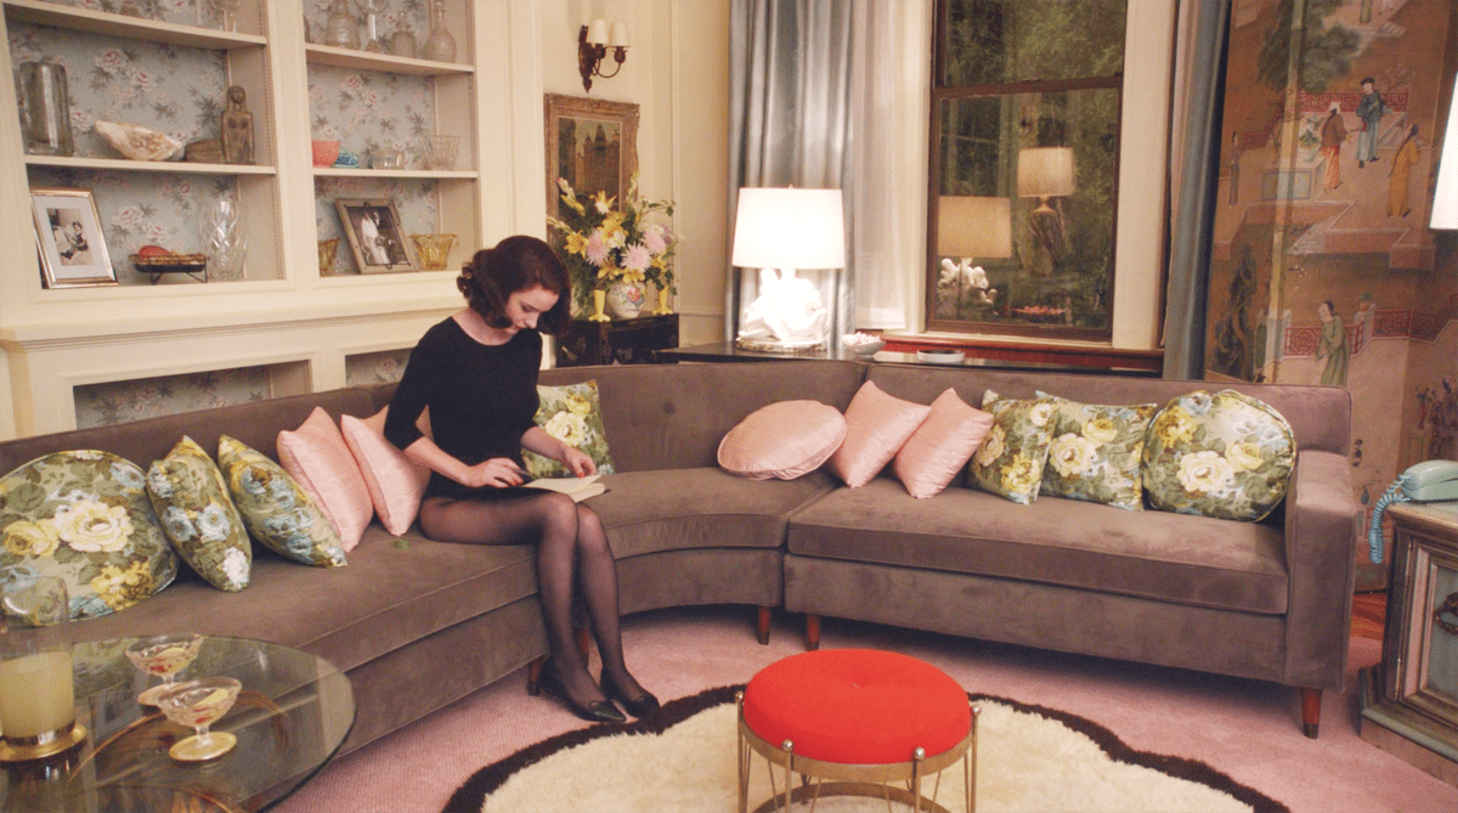 A scene from the Marvelous Mrs. Maisel includes a gray midcentury couch, red and gold ottoman, and floral and pink throw pillows.